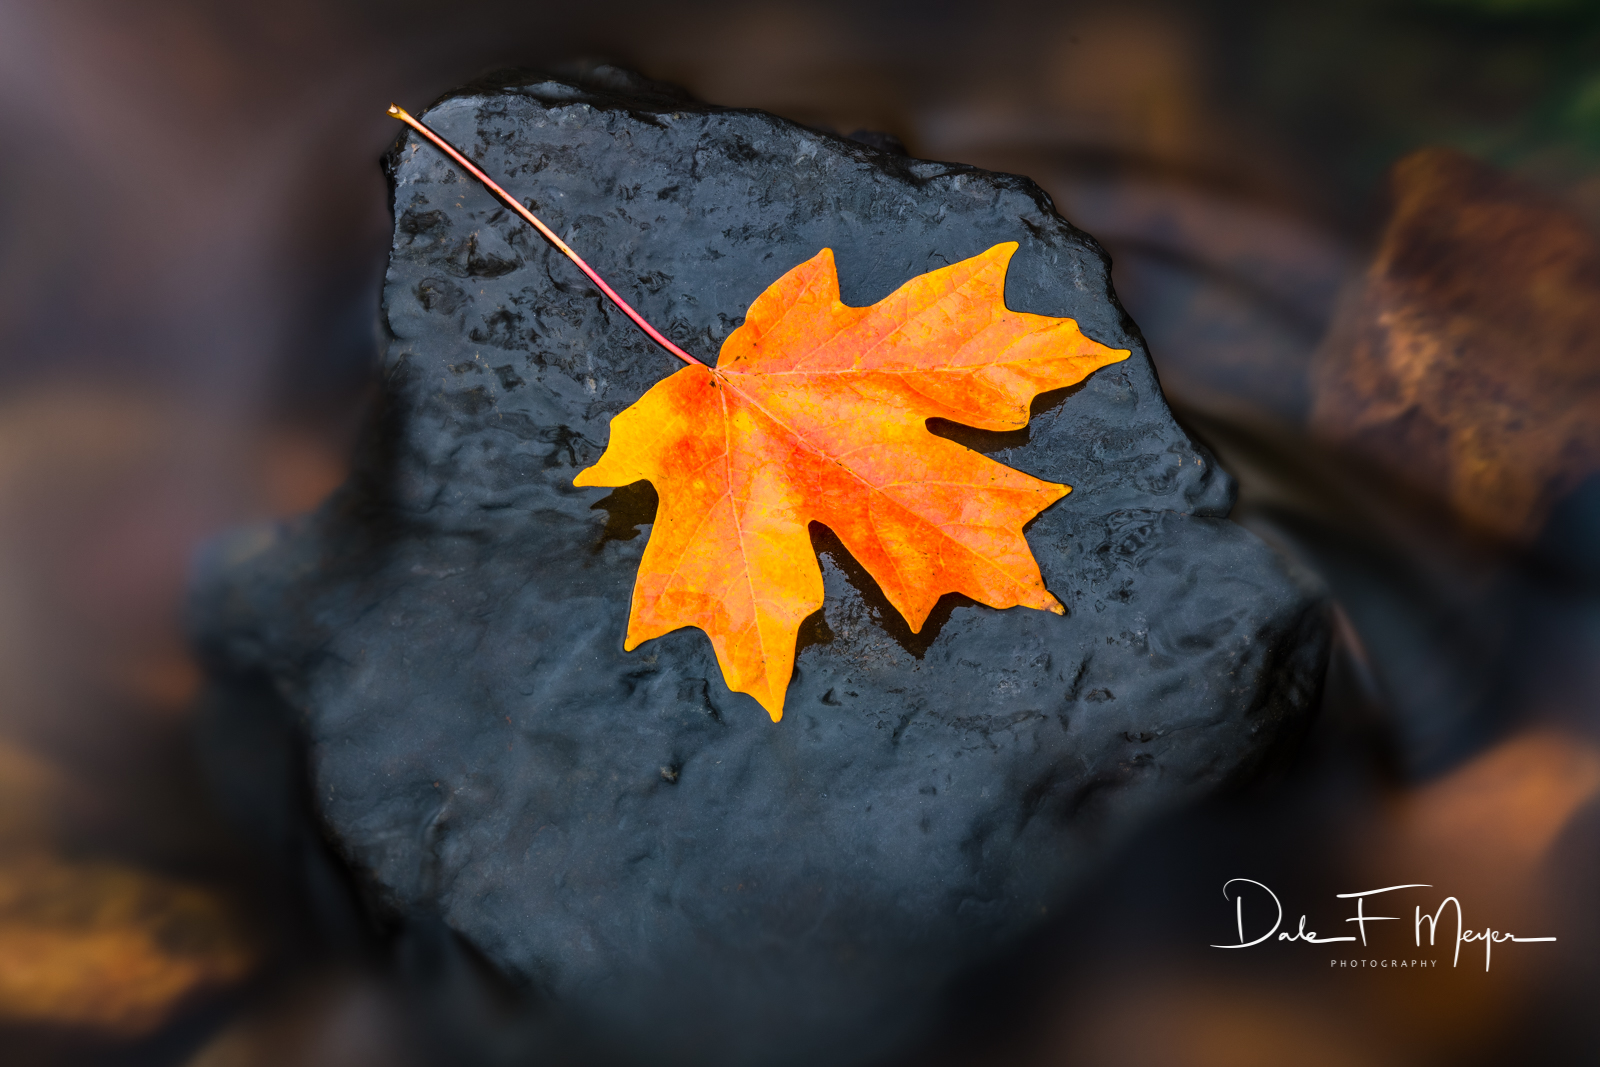 A perfect Maple Leaf at rest on a black shale stone in a water run off of the Buffalo River in North Arkansas.